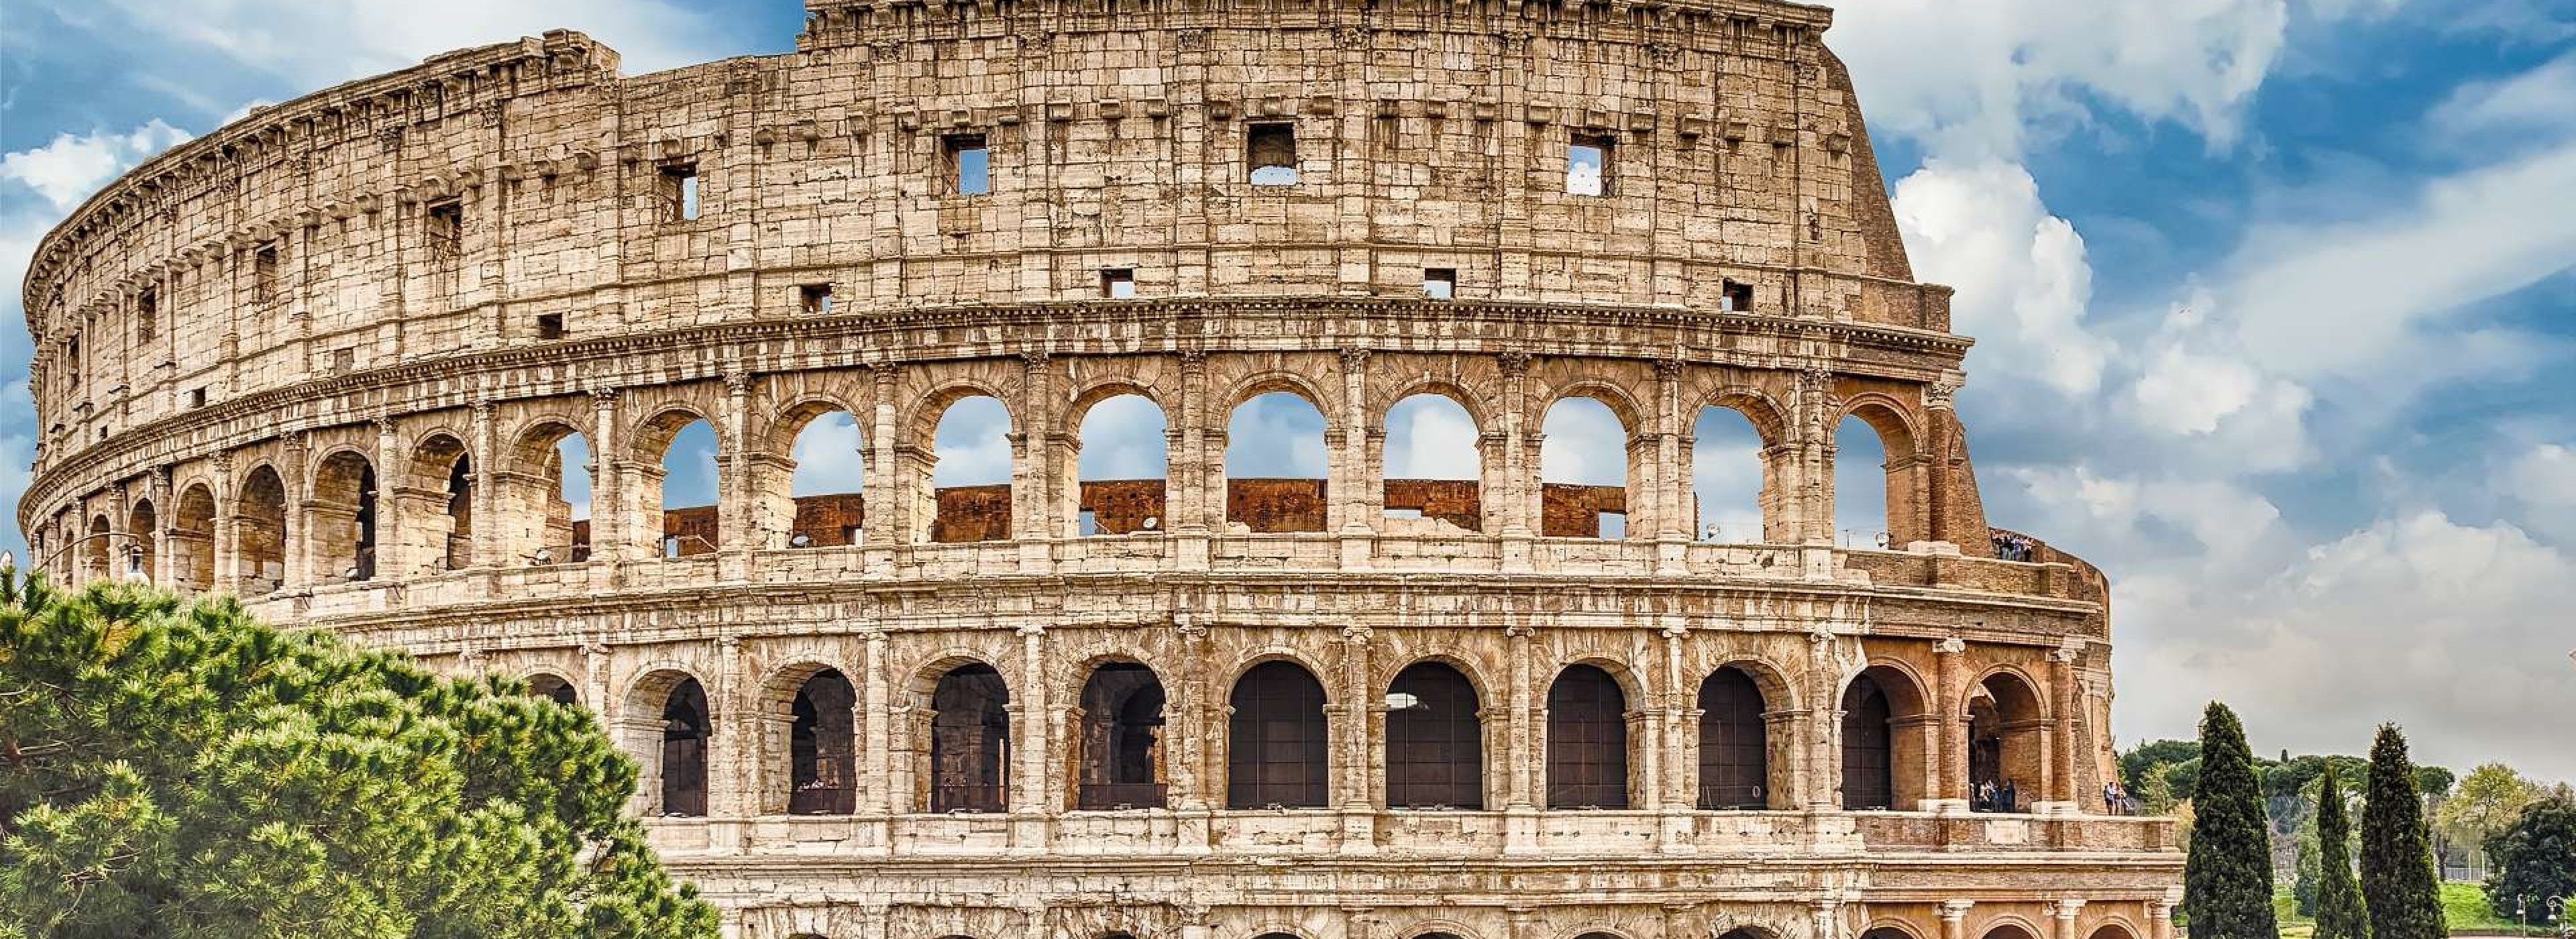 Splendors of Italy Private Tour Gallery